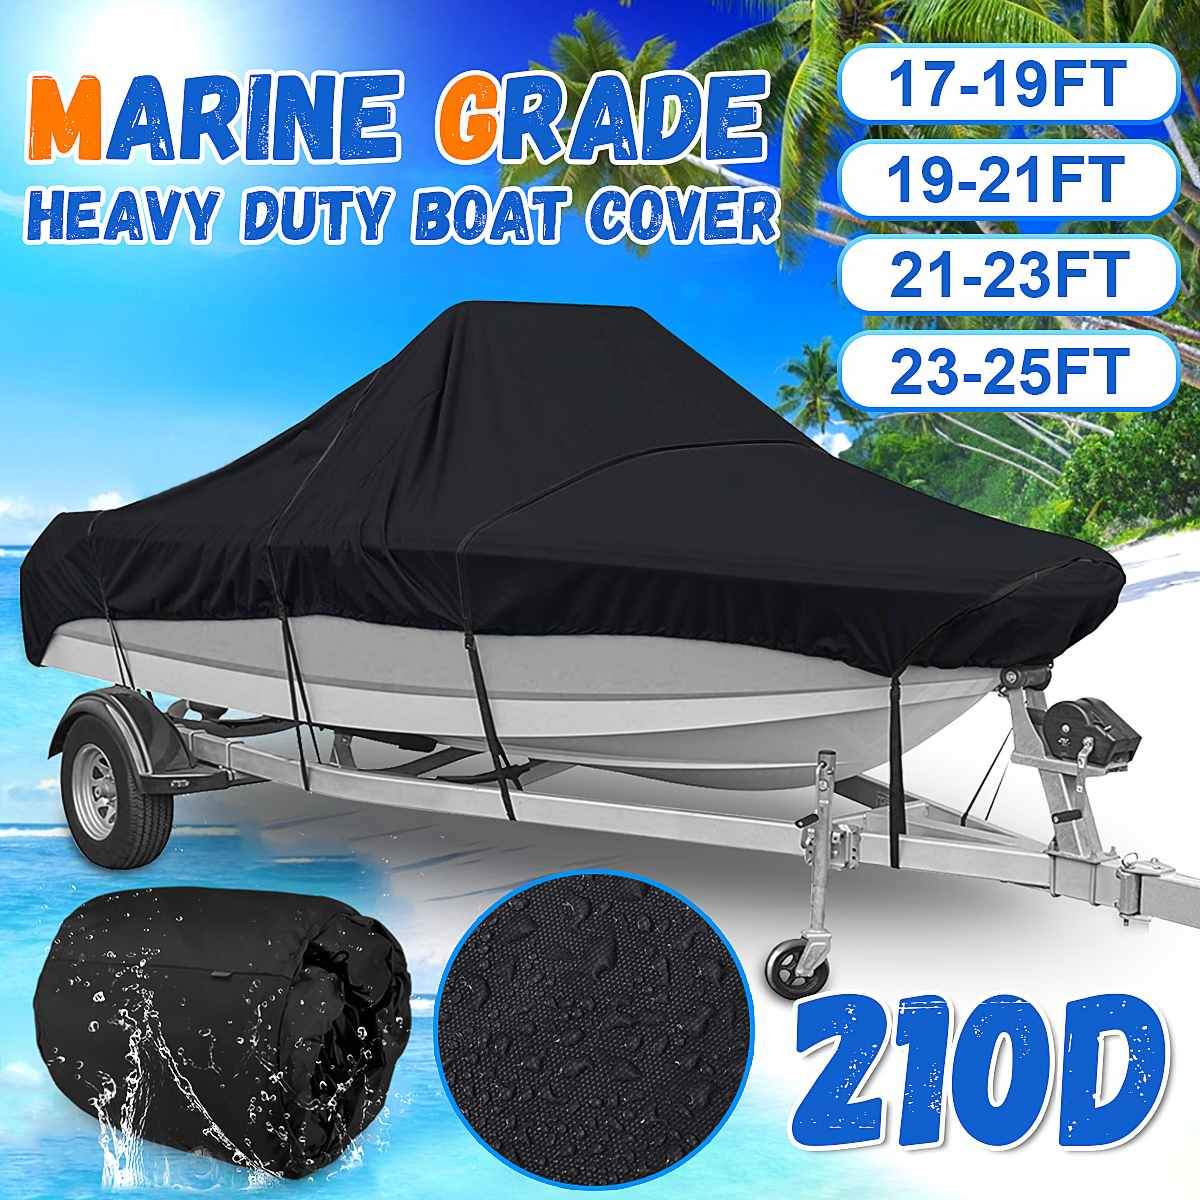 Waterproof 210D PVC Coated Tarpaulin V-hull Boat Ship Cover Outdoor Fit 17-19ft